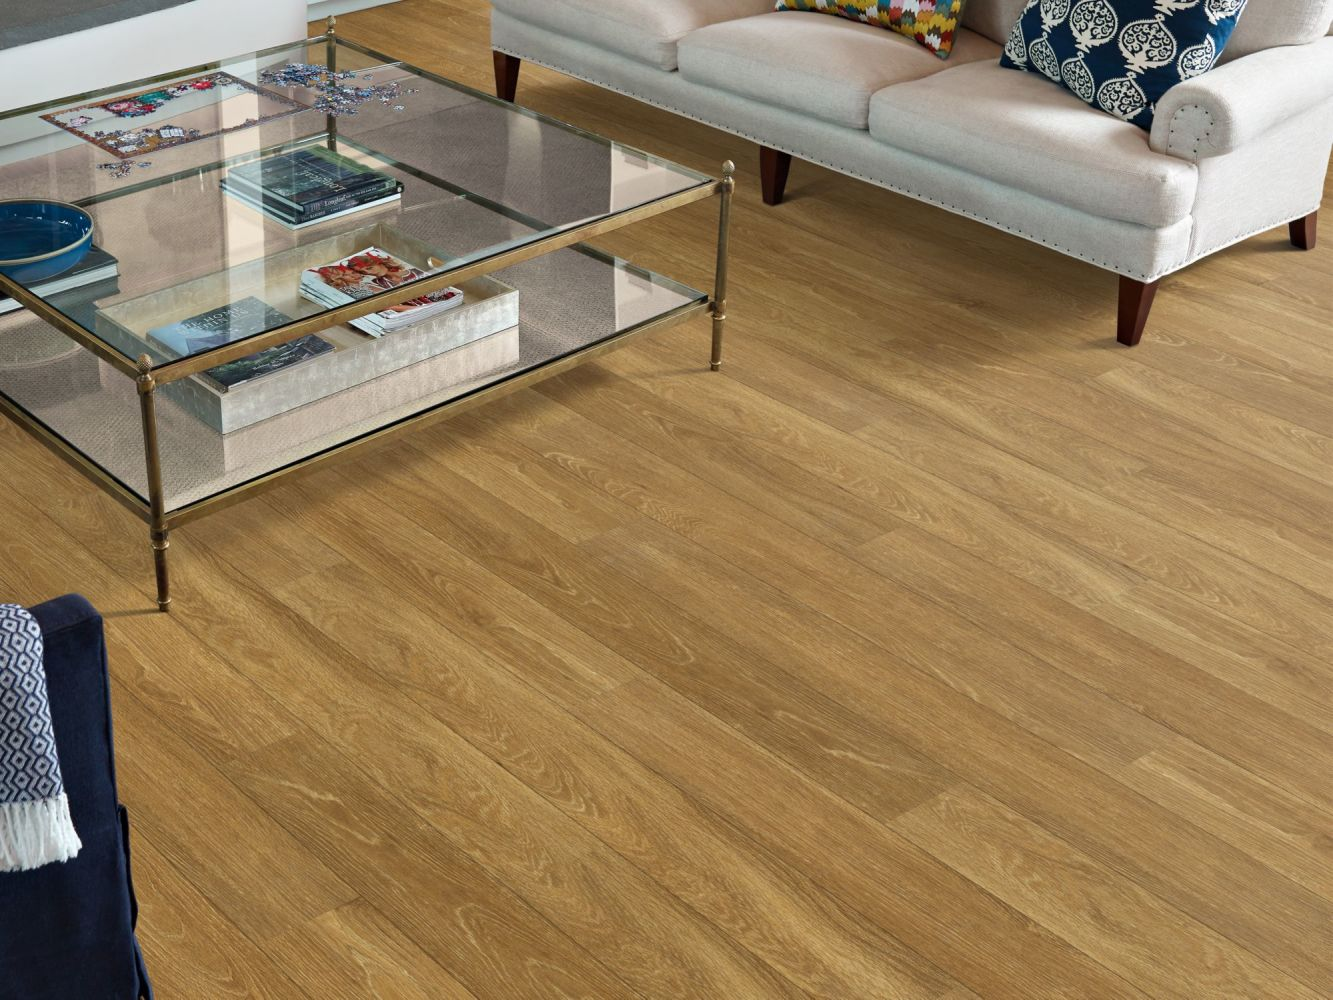 Shaw Floors 5th And Main Symbiotic 20 Reed 00256_5M303